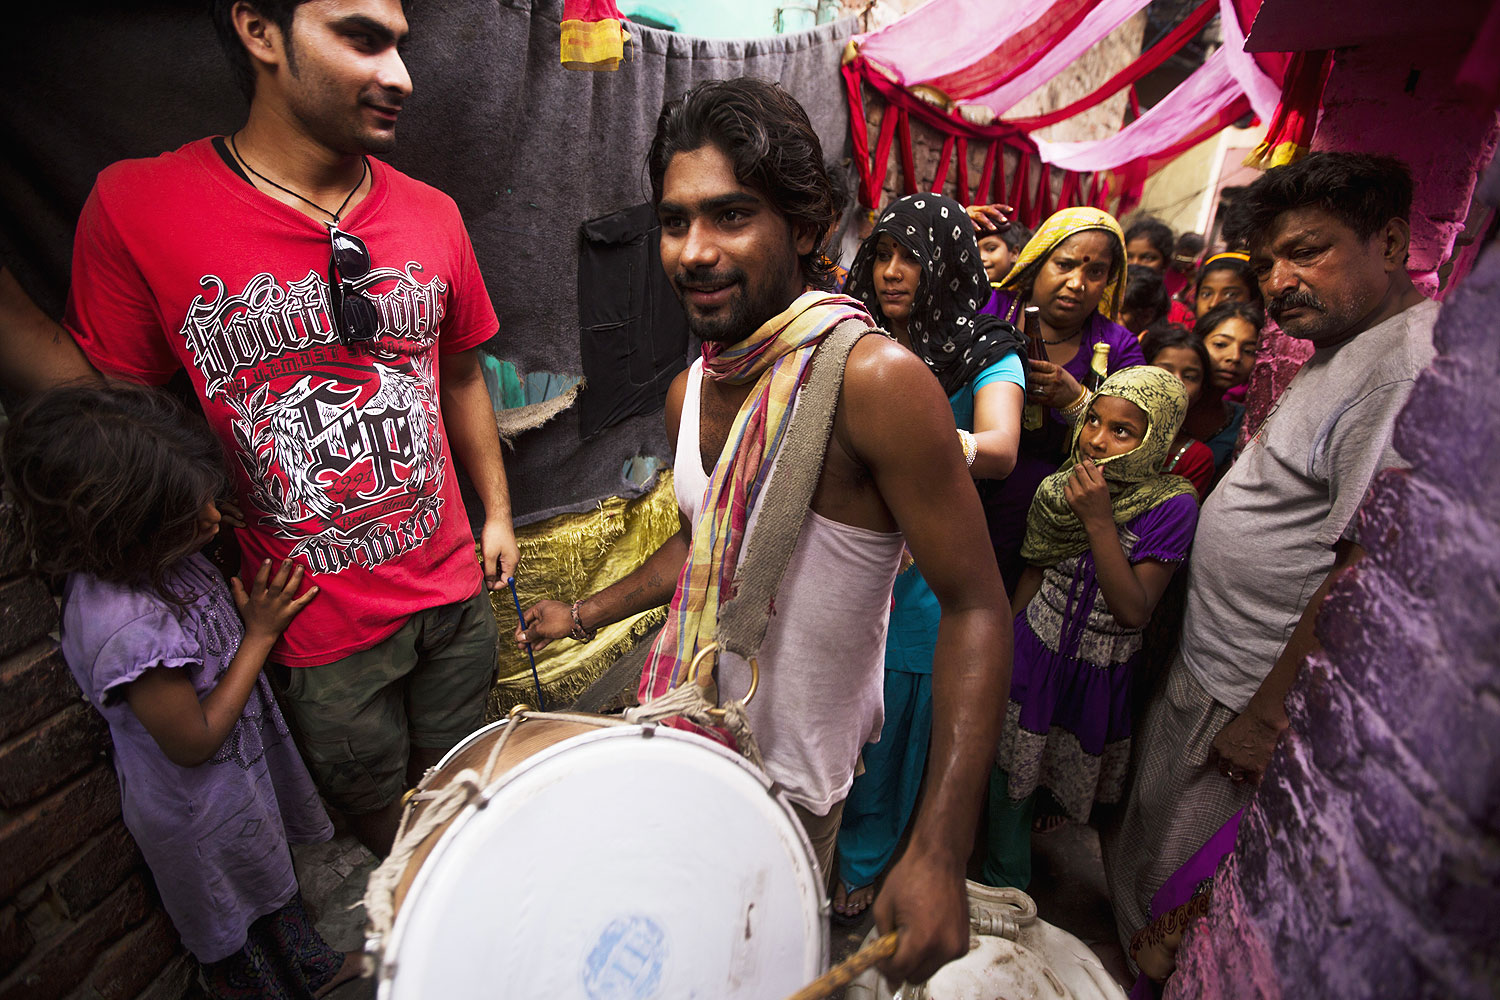 An Indian drummer leads a group of women during a wedding procession in Kathputli Colony in New Delhi, June 2013. The name Kathputli Colony comes from the Hindi word for puppet, and it is an area inhabited by puppeteers, magicians, acrobats, dancers and musicians